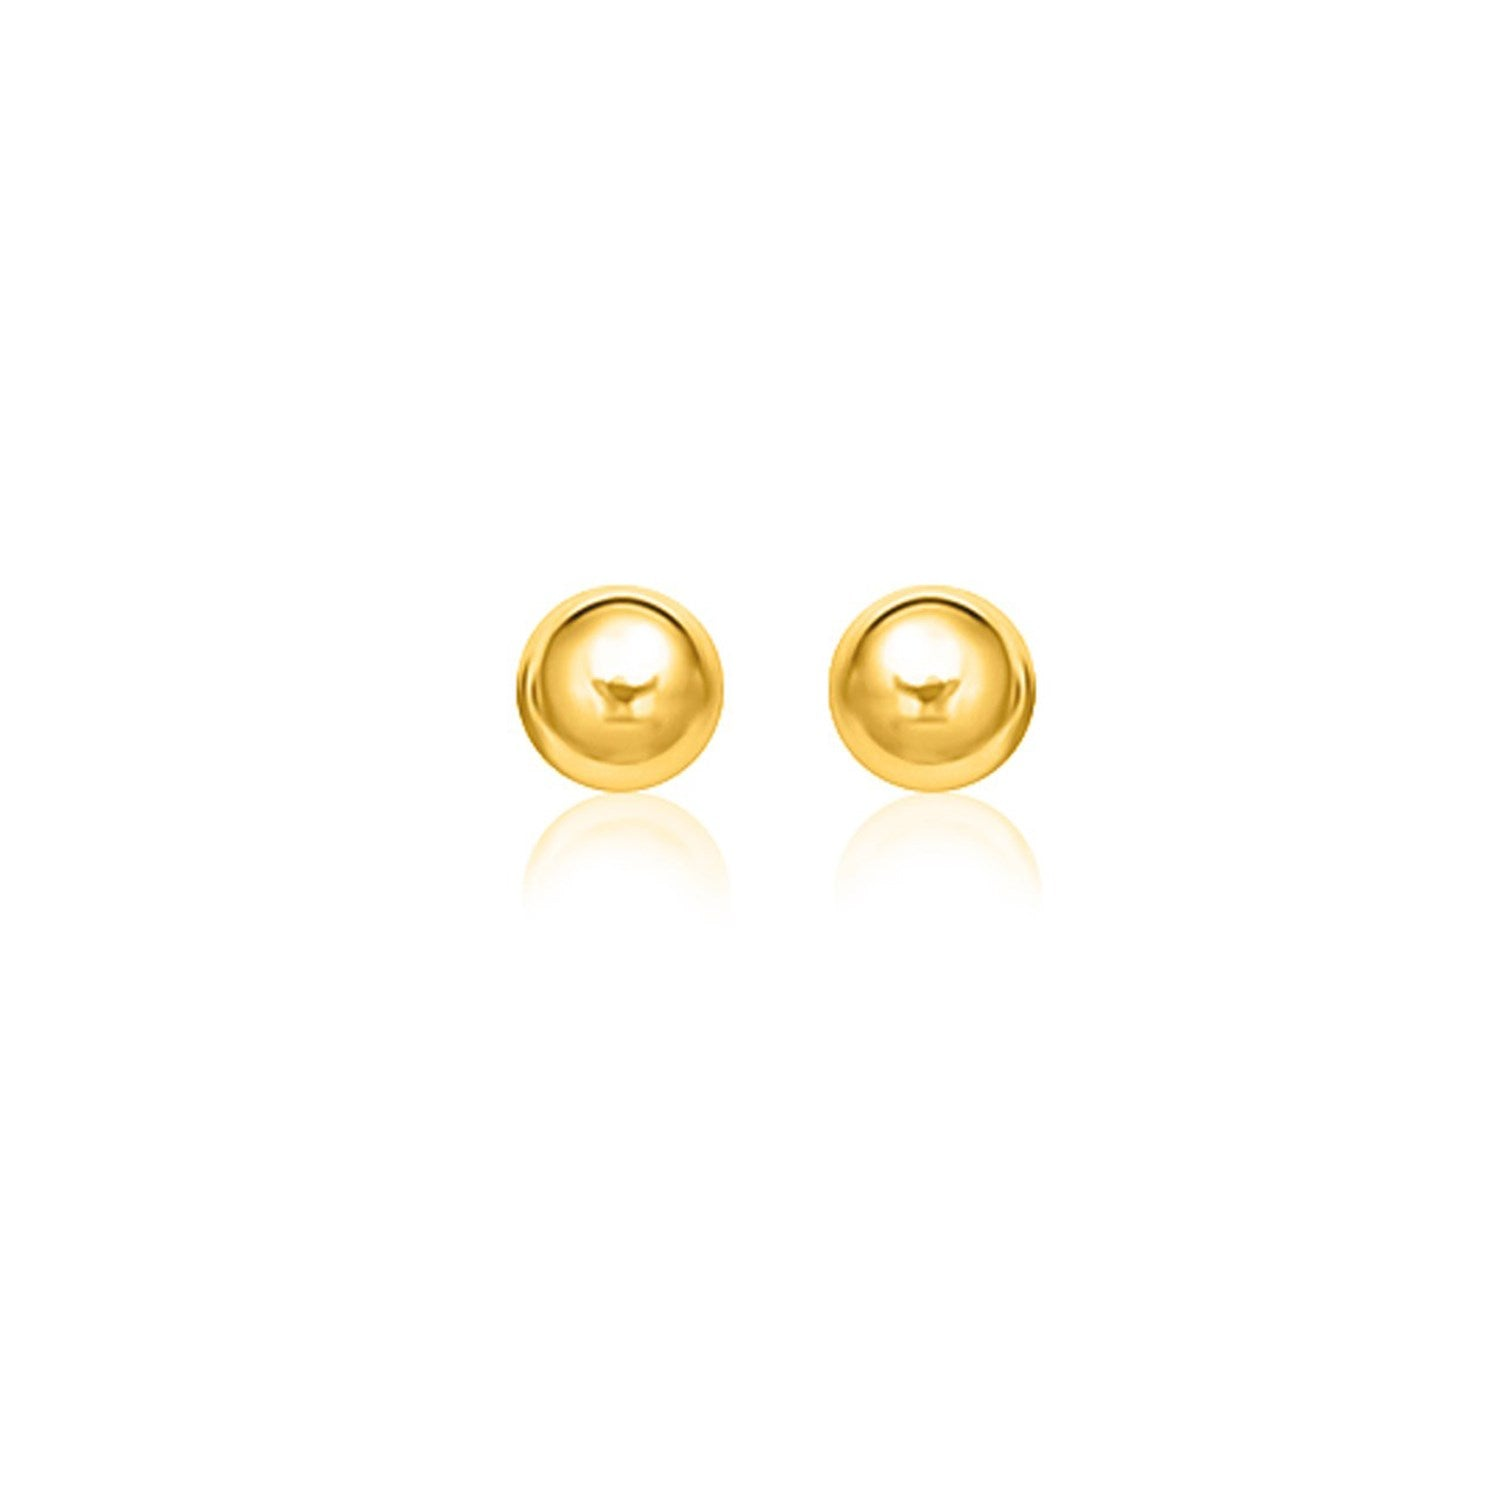 14K Yellow Gold Classic Stud Earrings (10.0 mm)